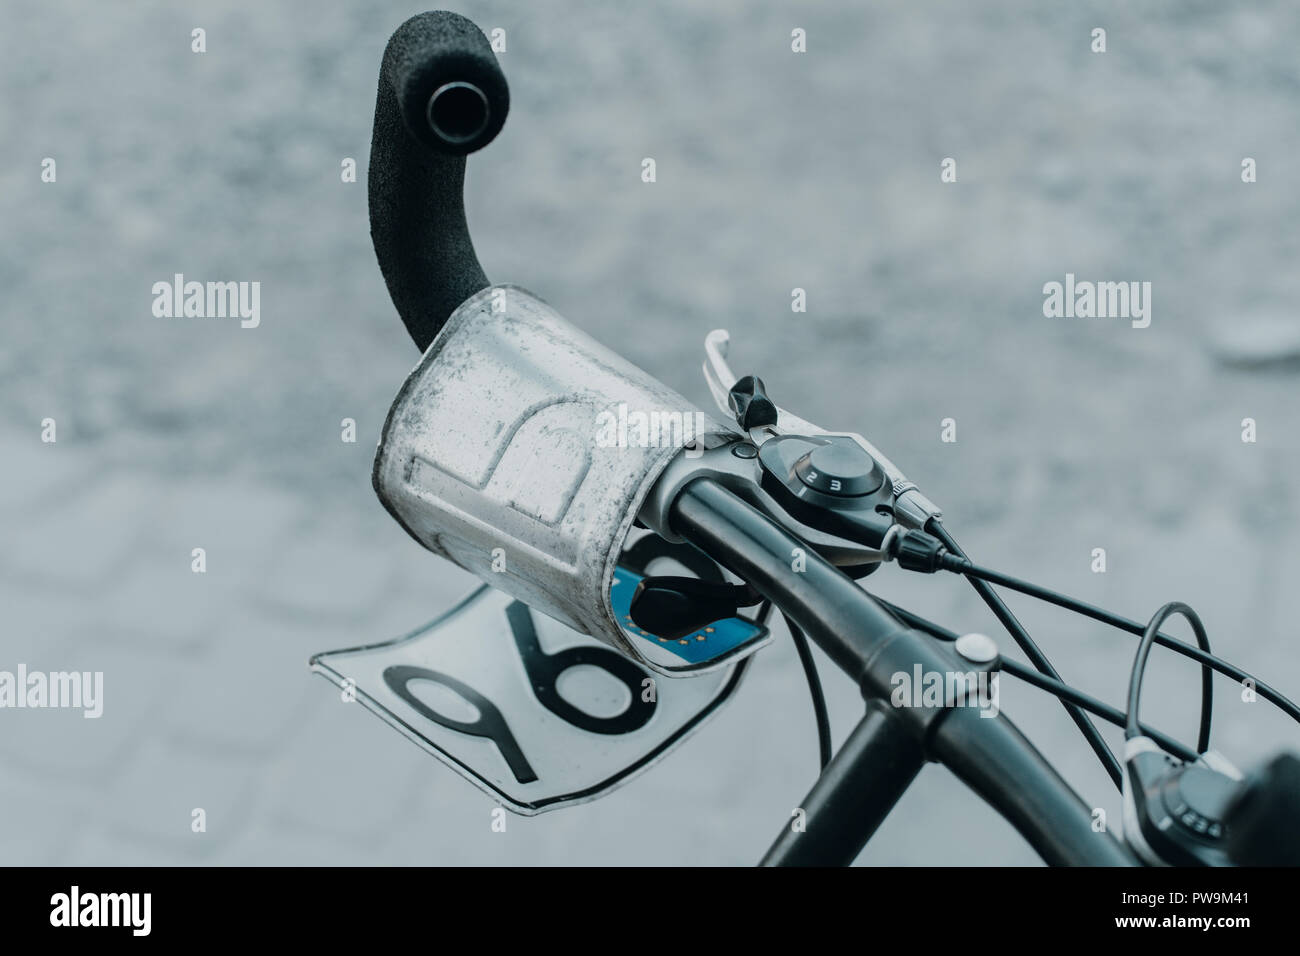 number plate on the bike - Stock Image